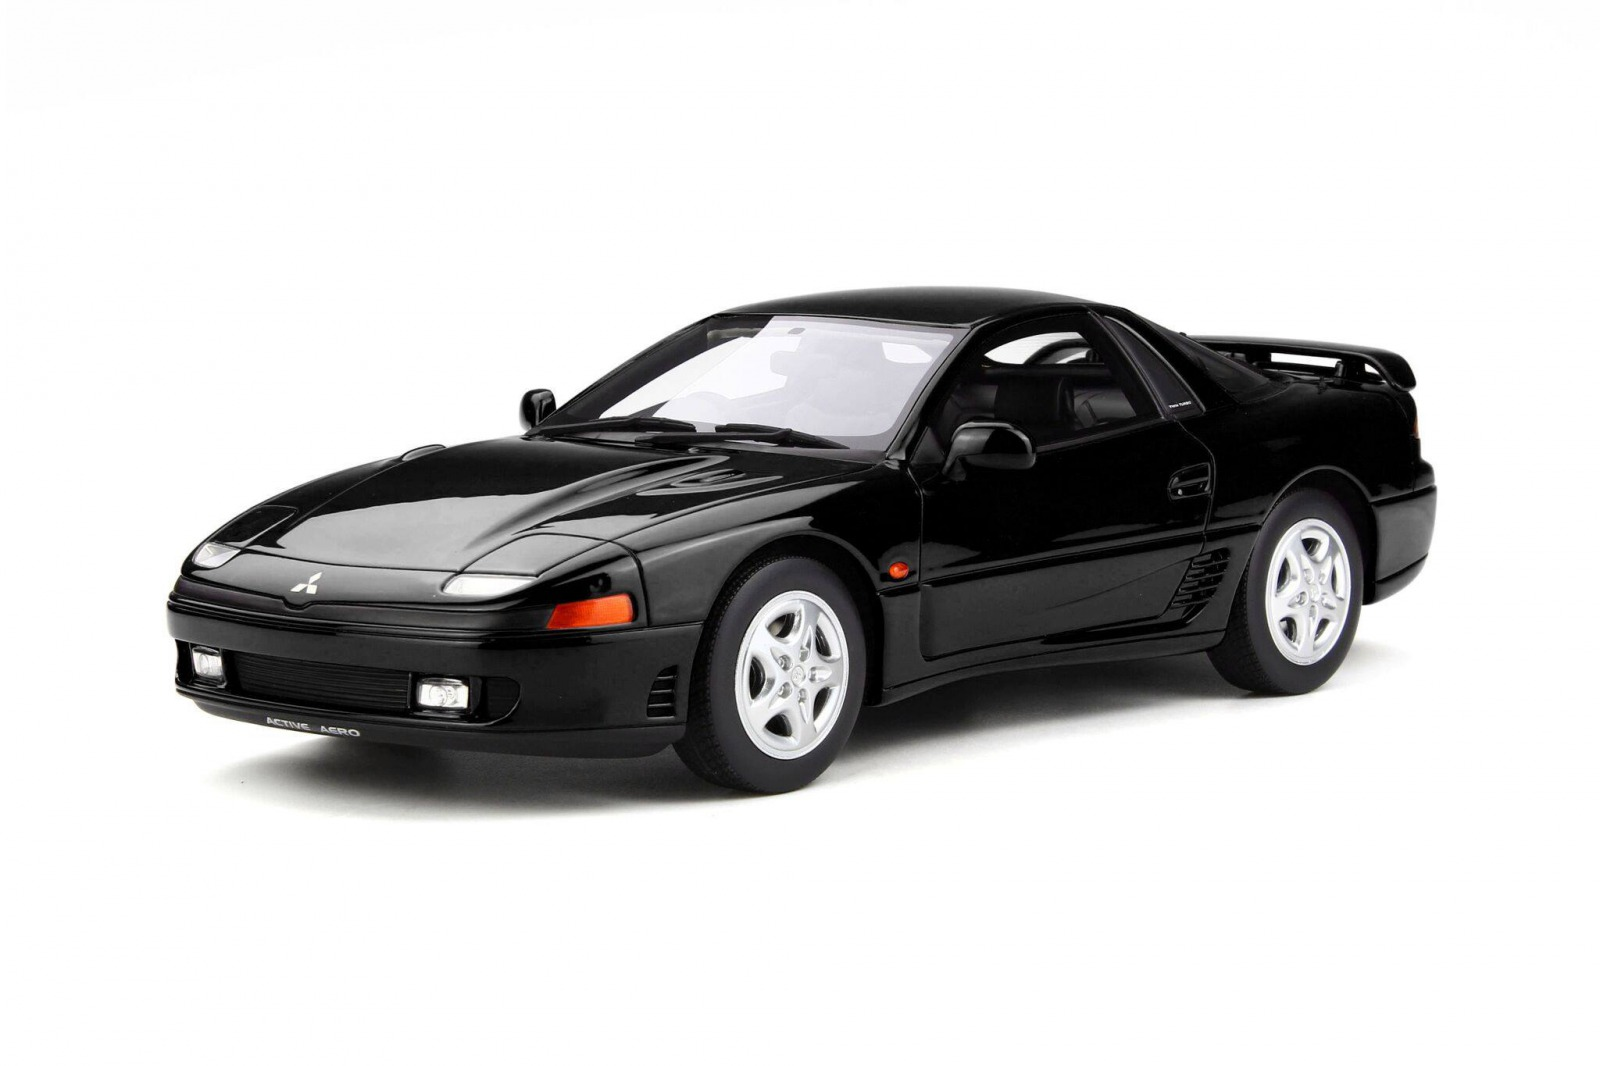 Mitsubishi Gto Twin Turbo For Sale In South Africa Car Tomica Premium 18 Dtw Corporation Ottomobile 1 1991 Model